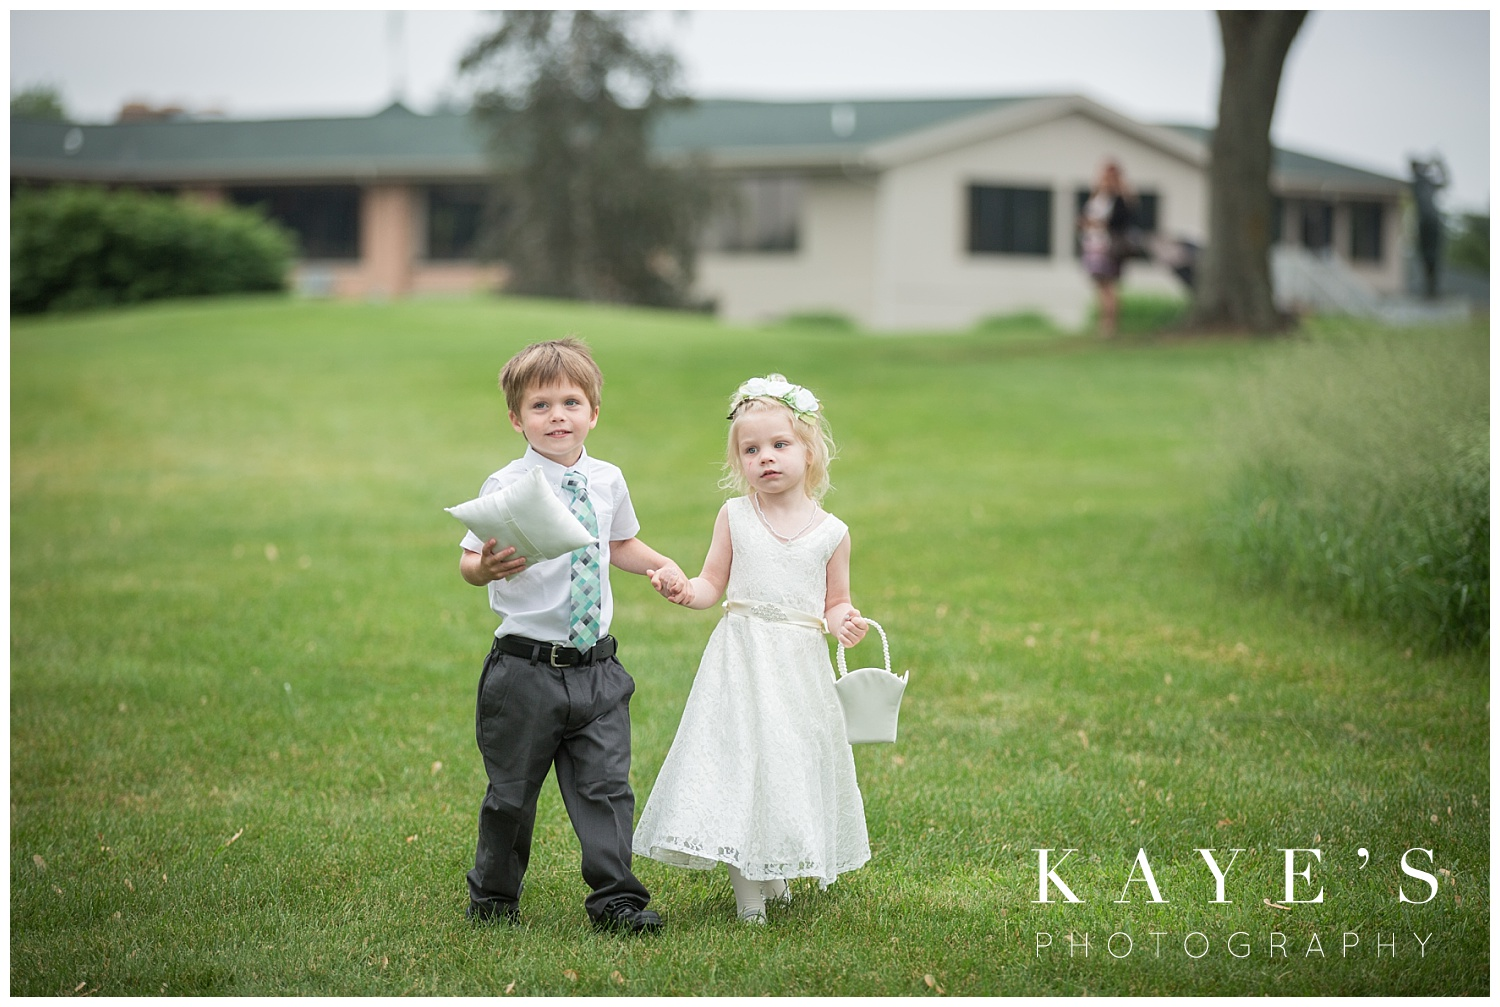 flower girl and ring bearer at a same sex wedding by Kaye's photography